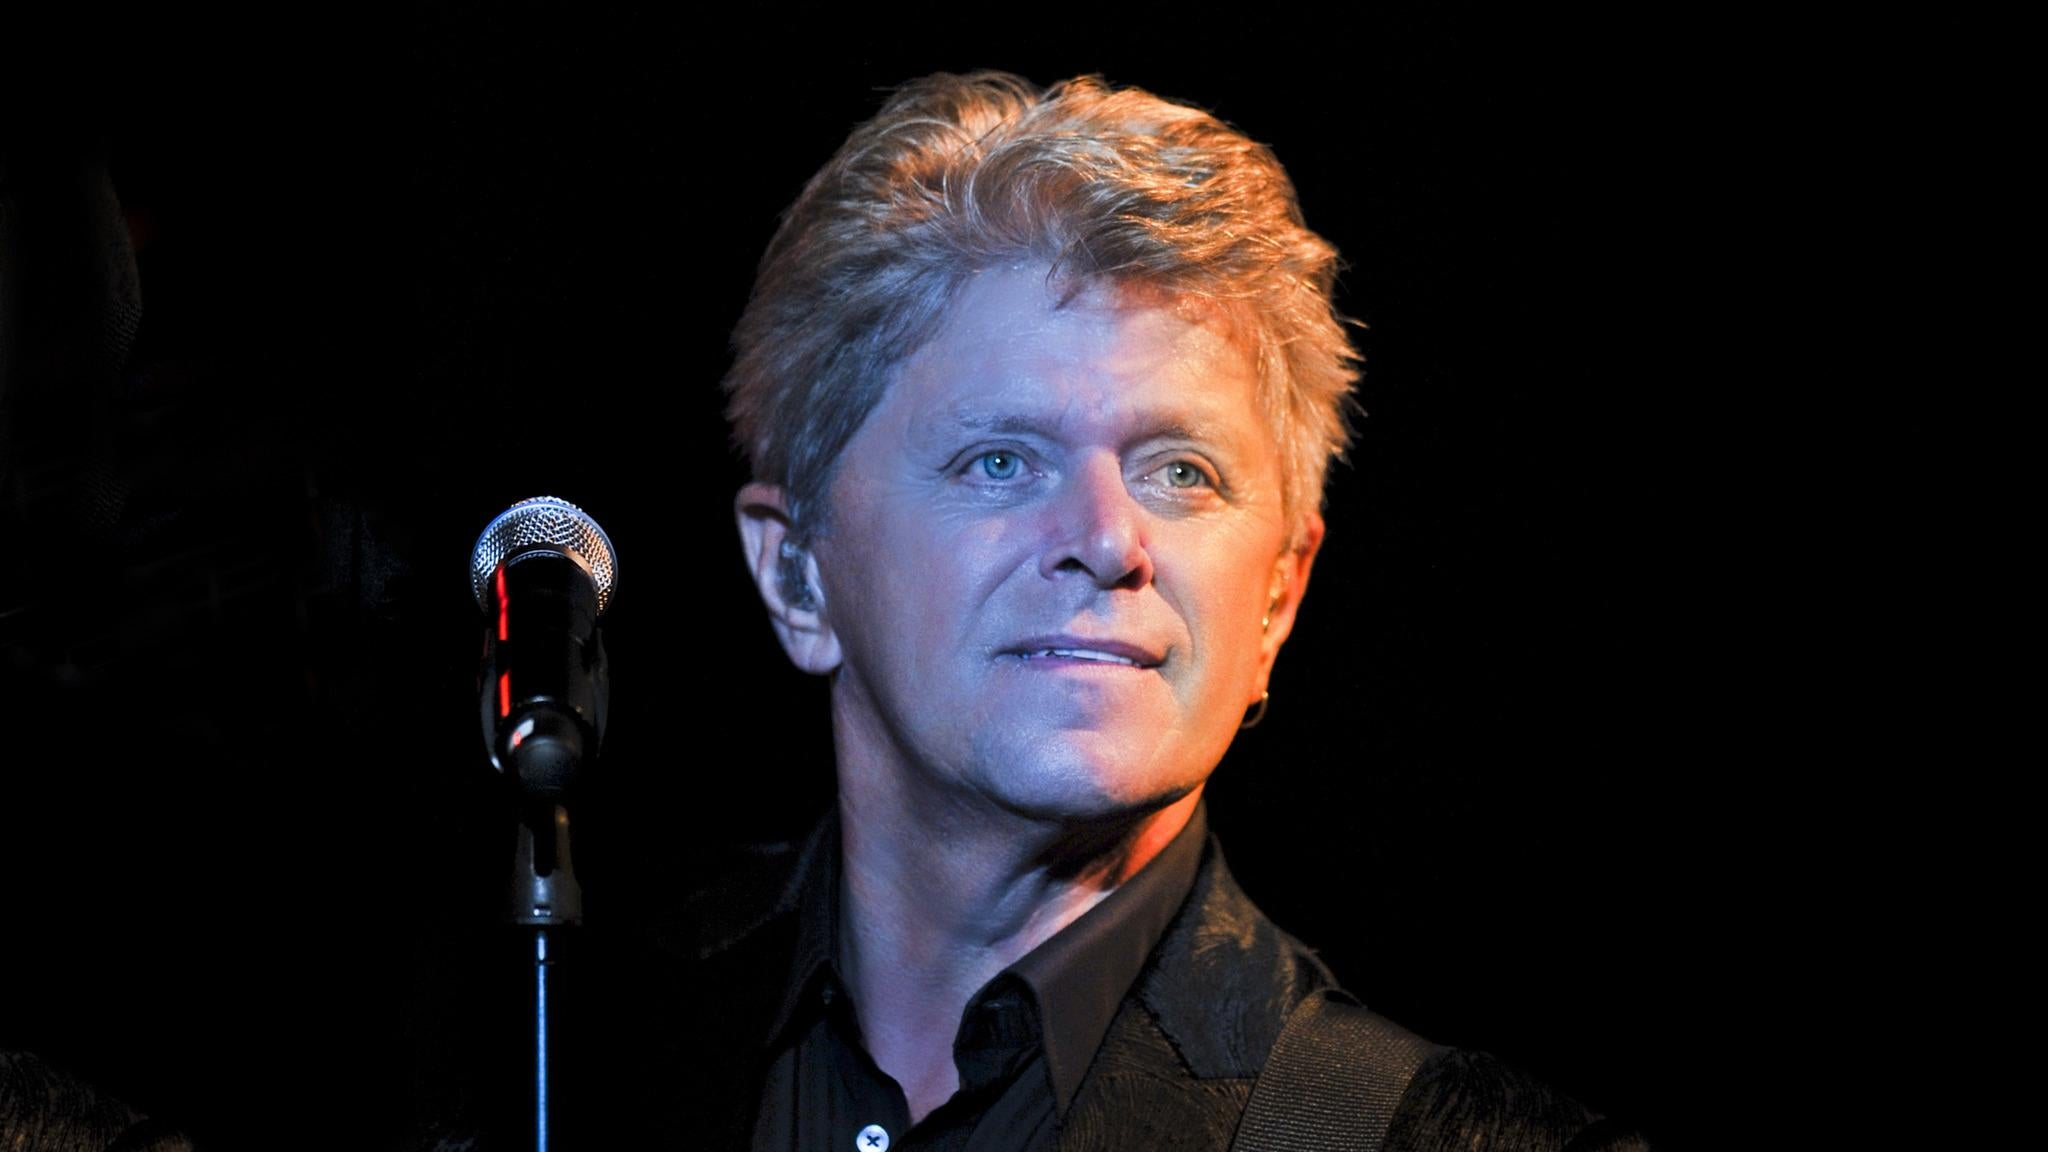 Peter Cetera at Neal S Blaisdell Concert Hall